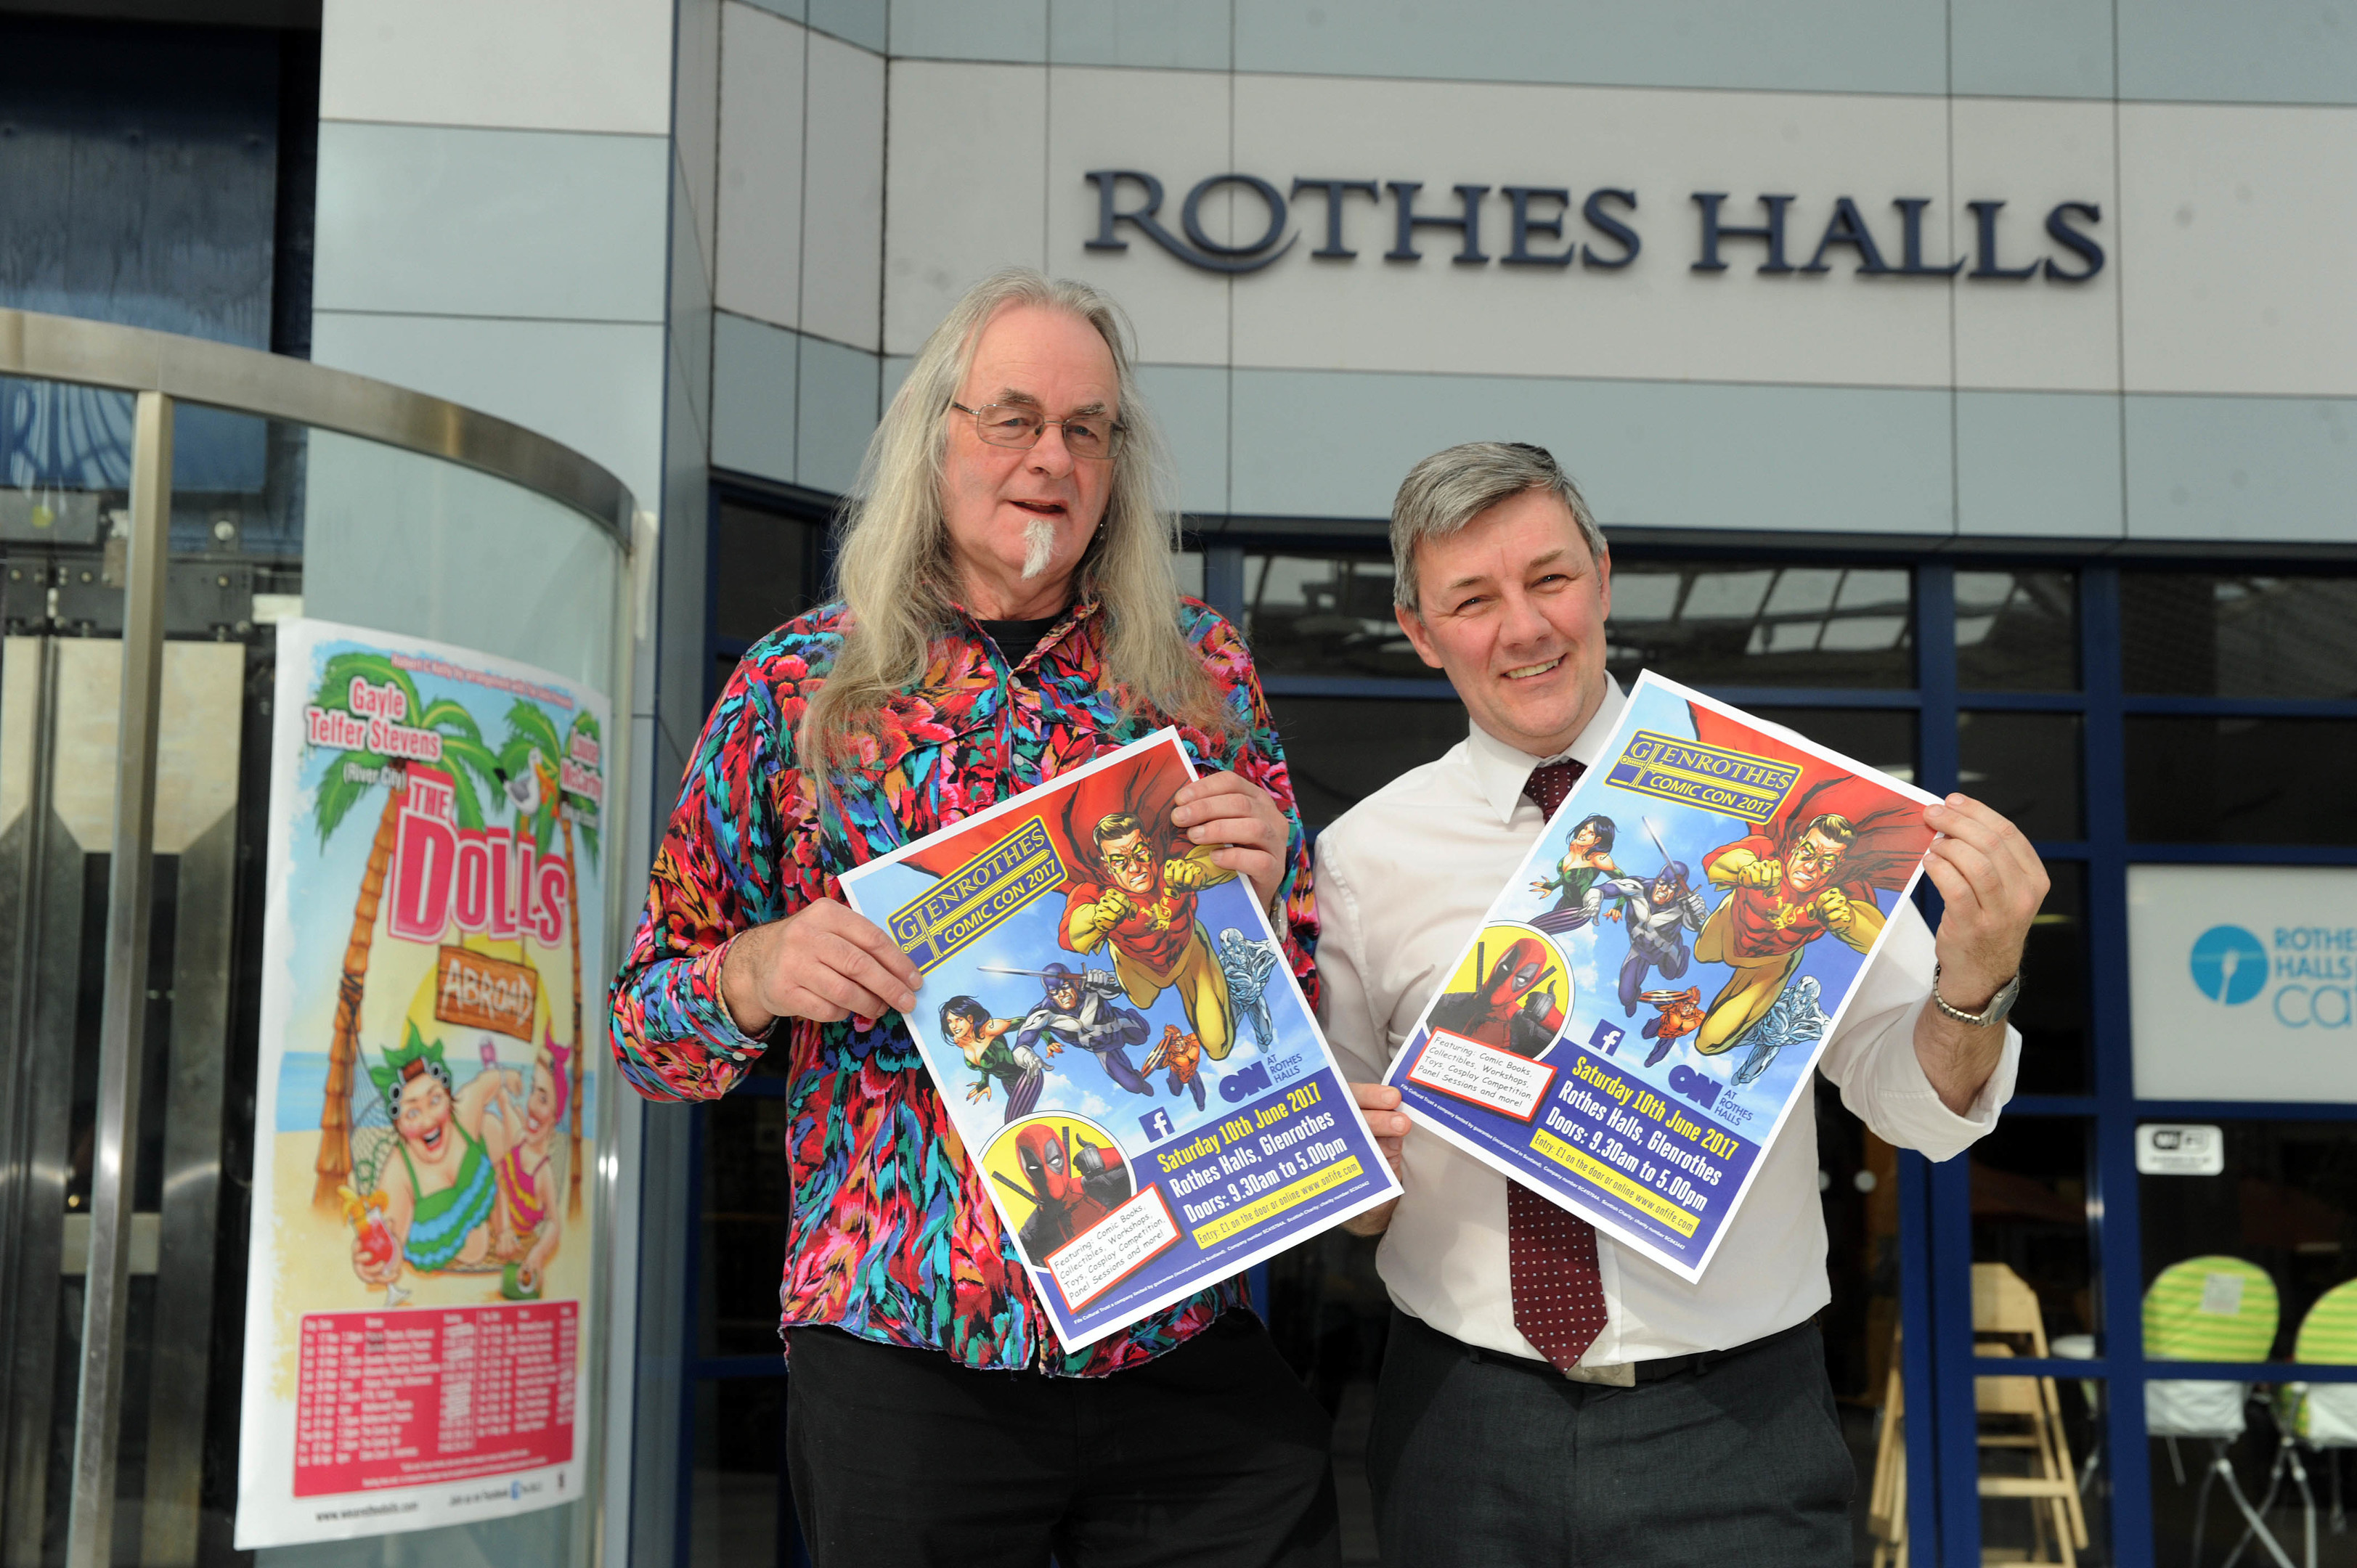 Michael Mowat and local councillor Altany Craik promoting the Comic Con event.